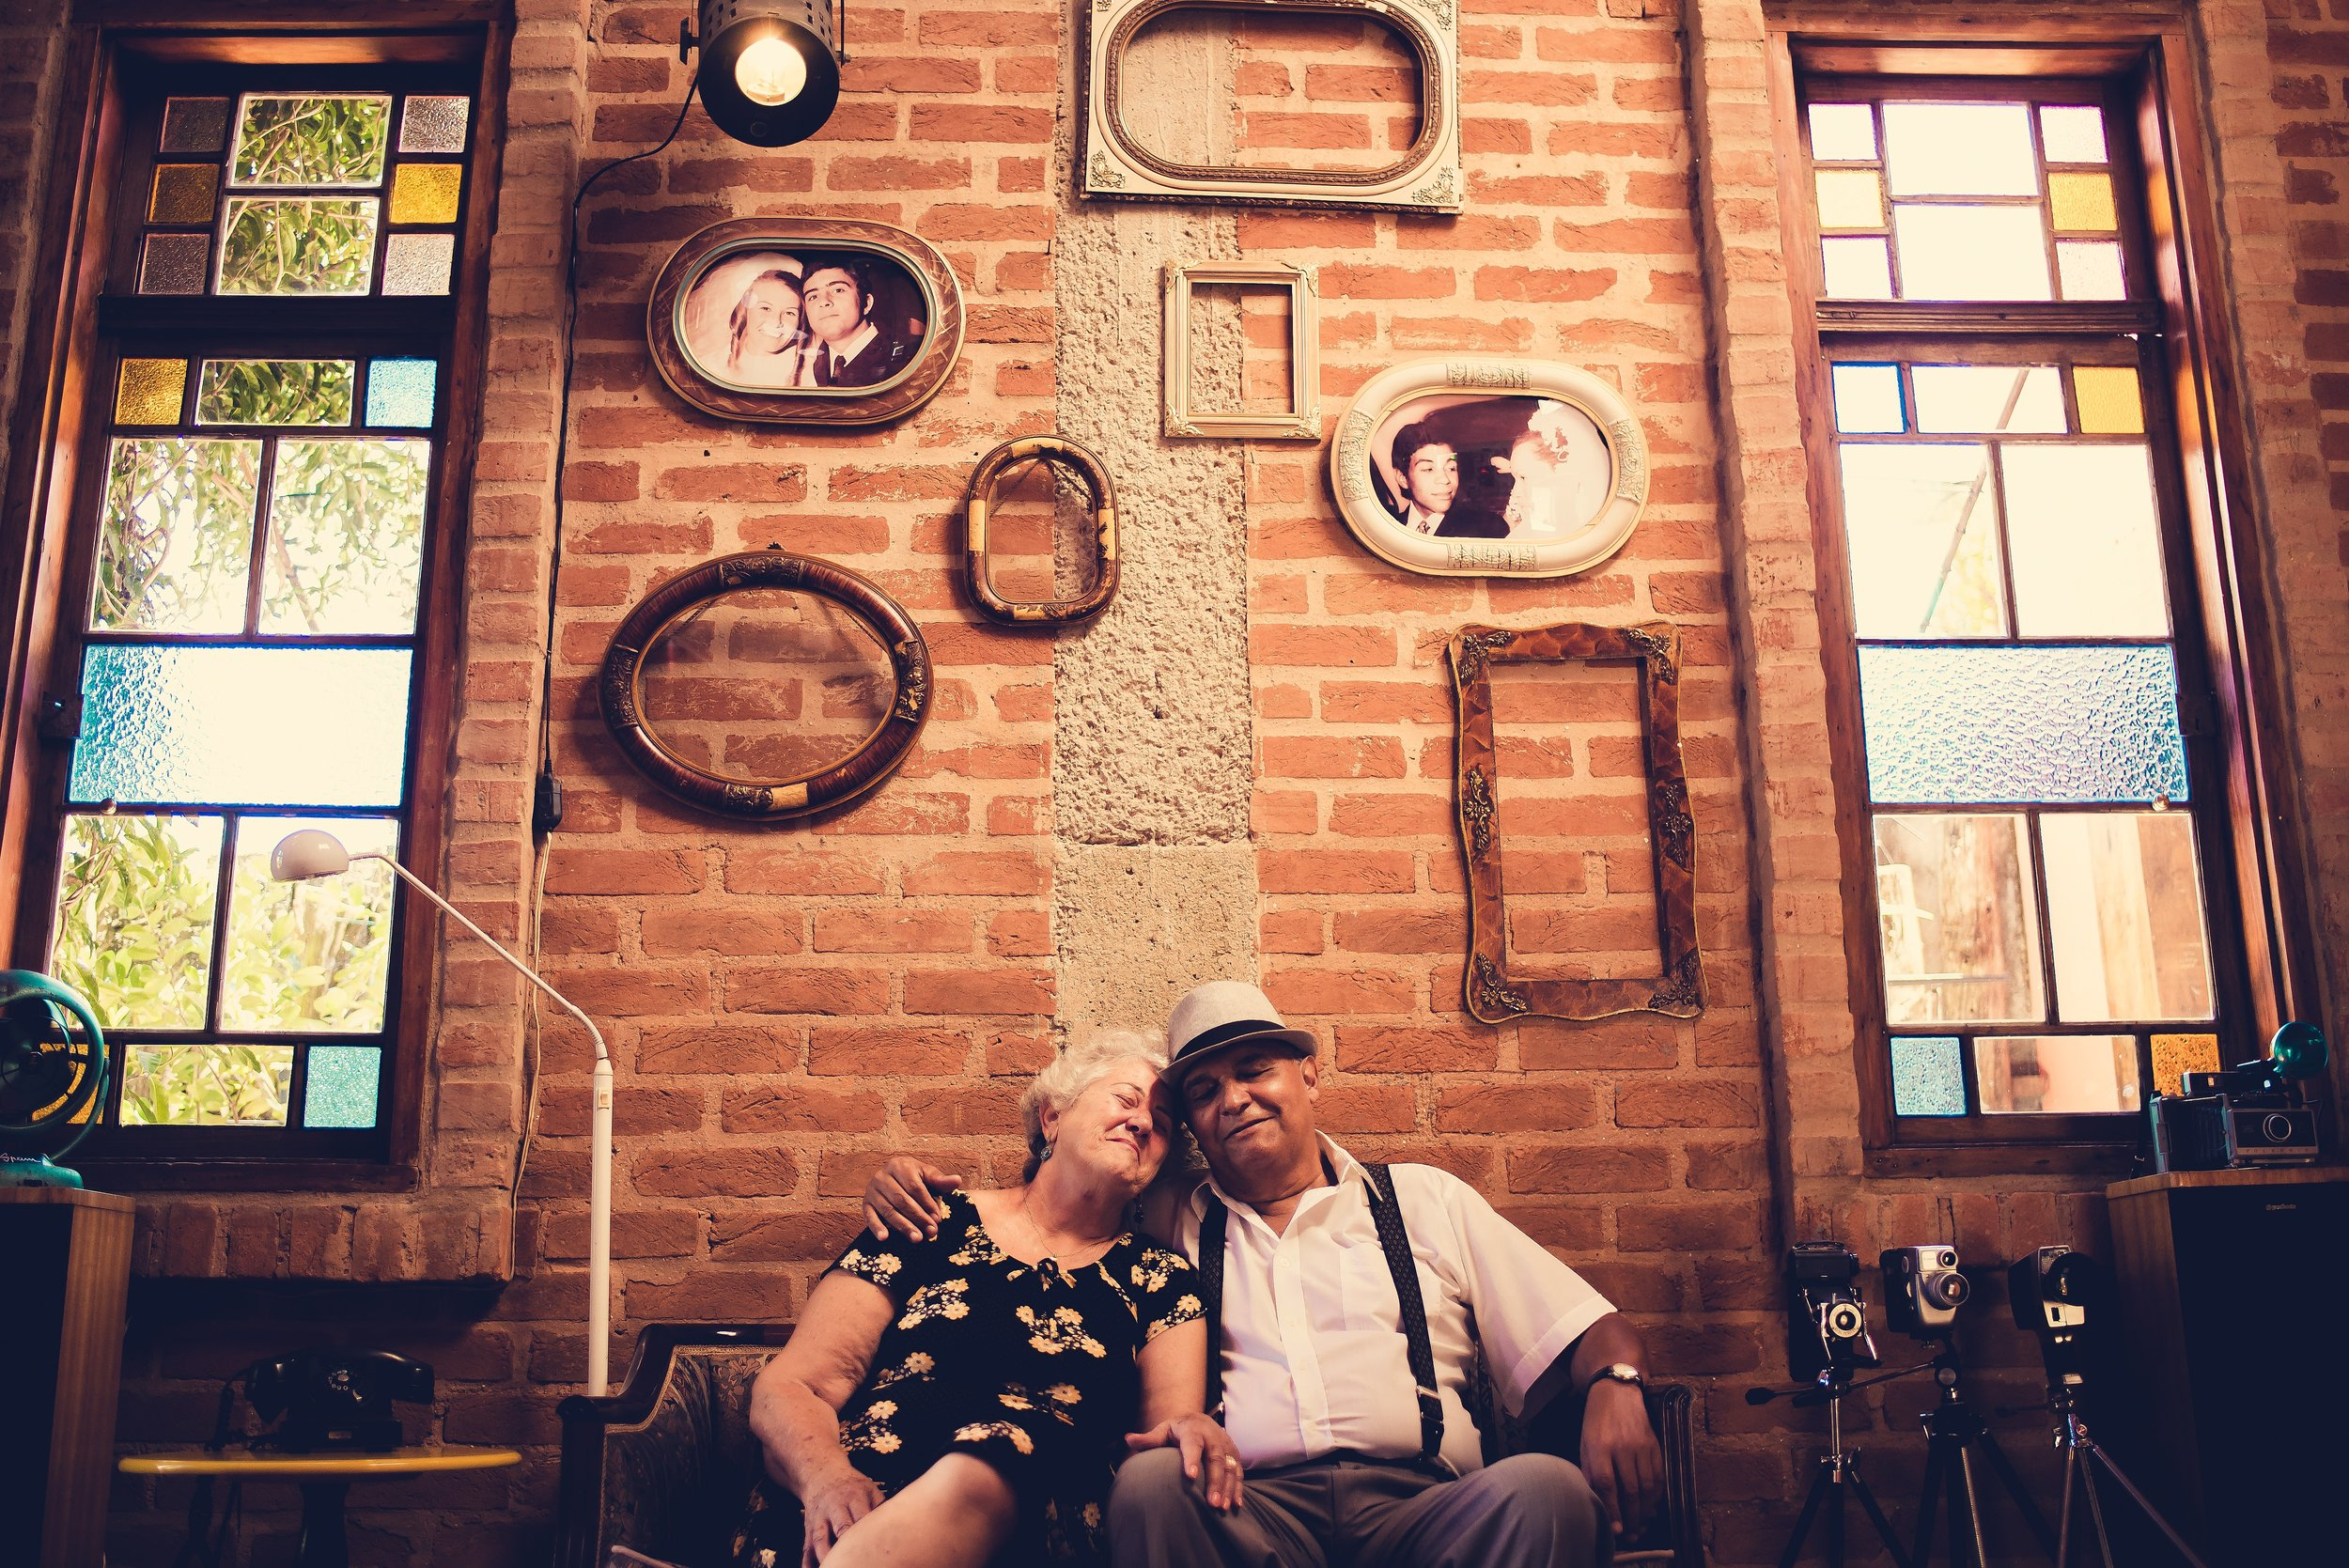 architecture-couple-elderly-1751187.jpg